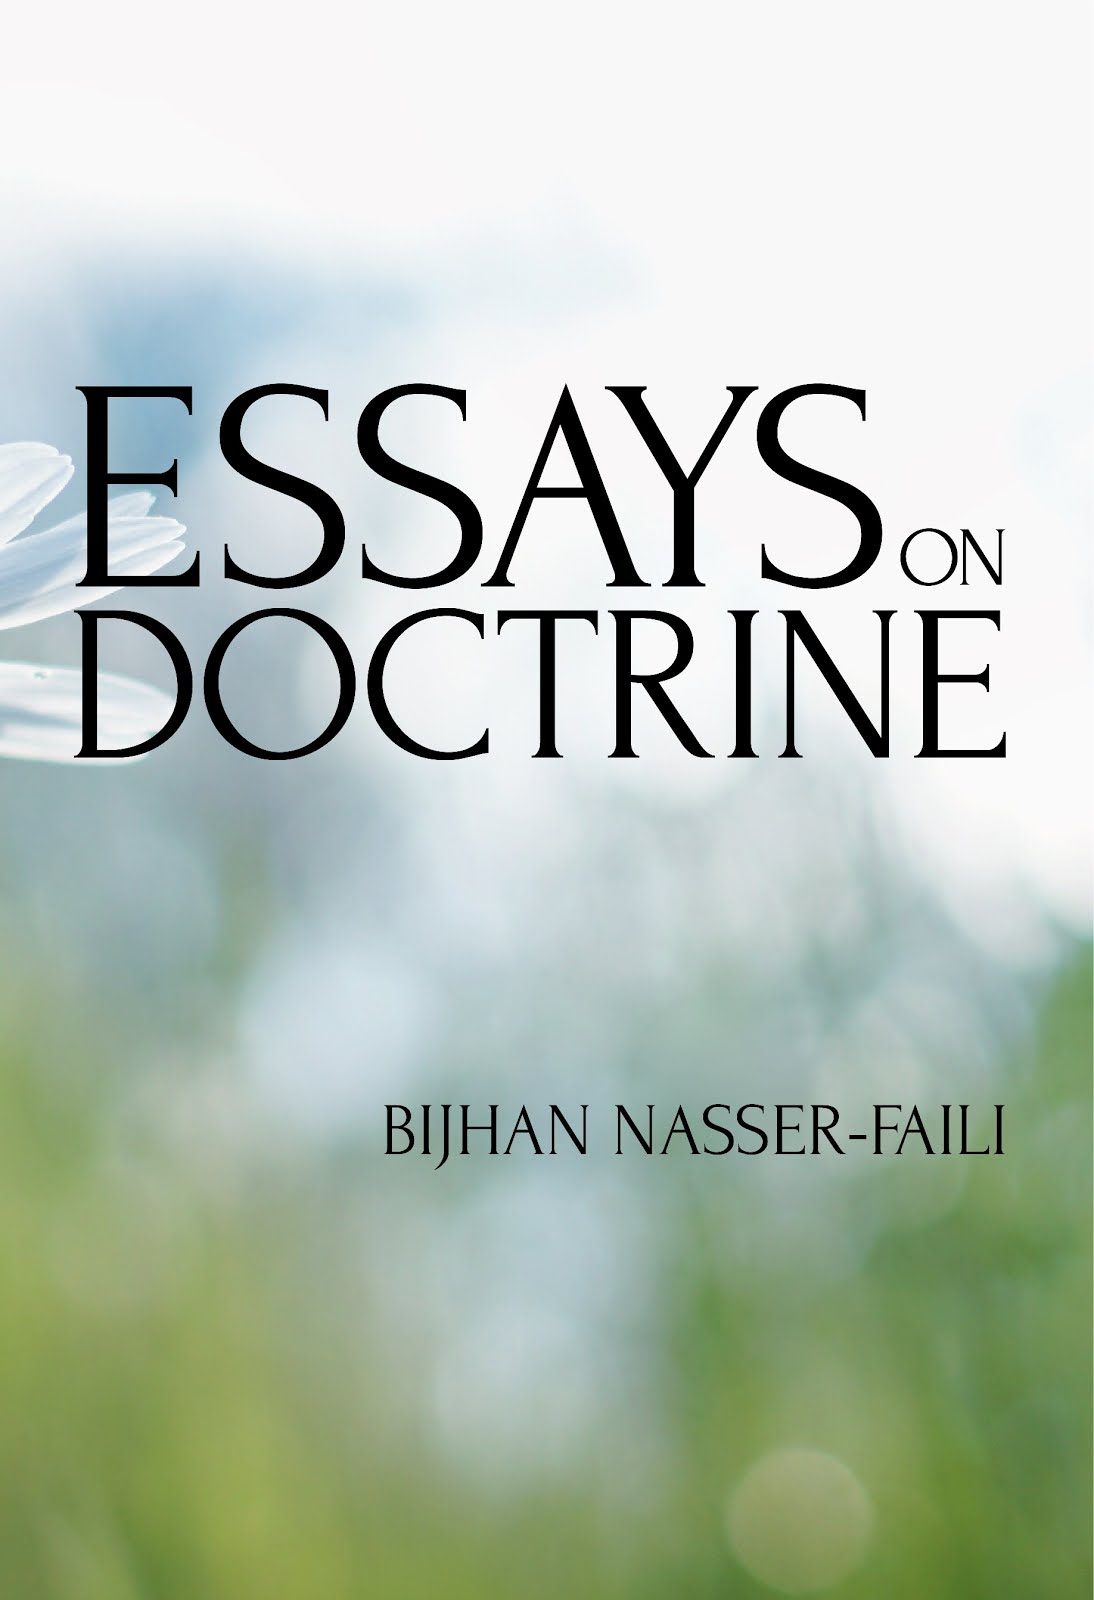 Essays on Doctrine